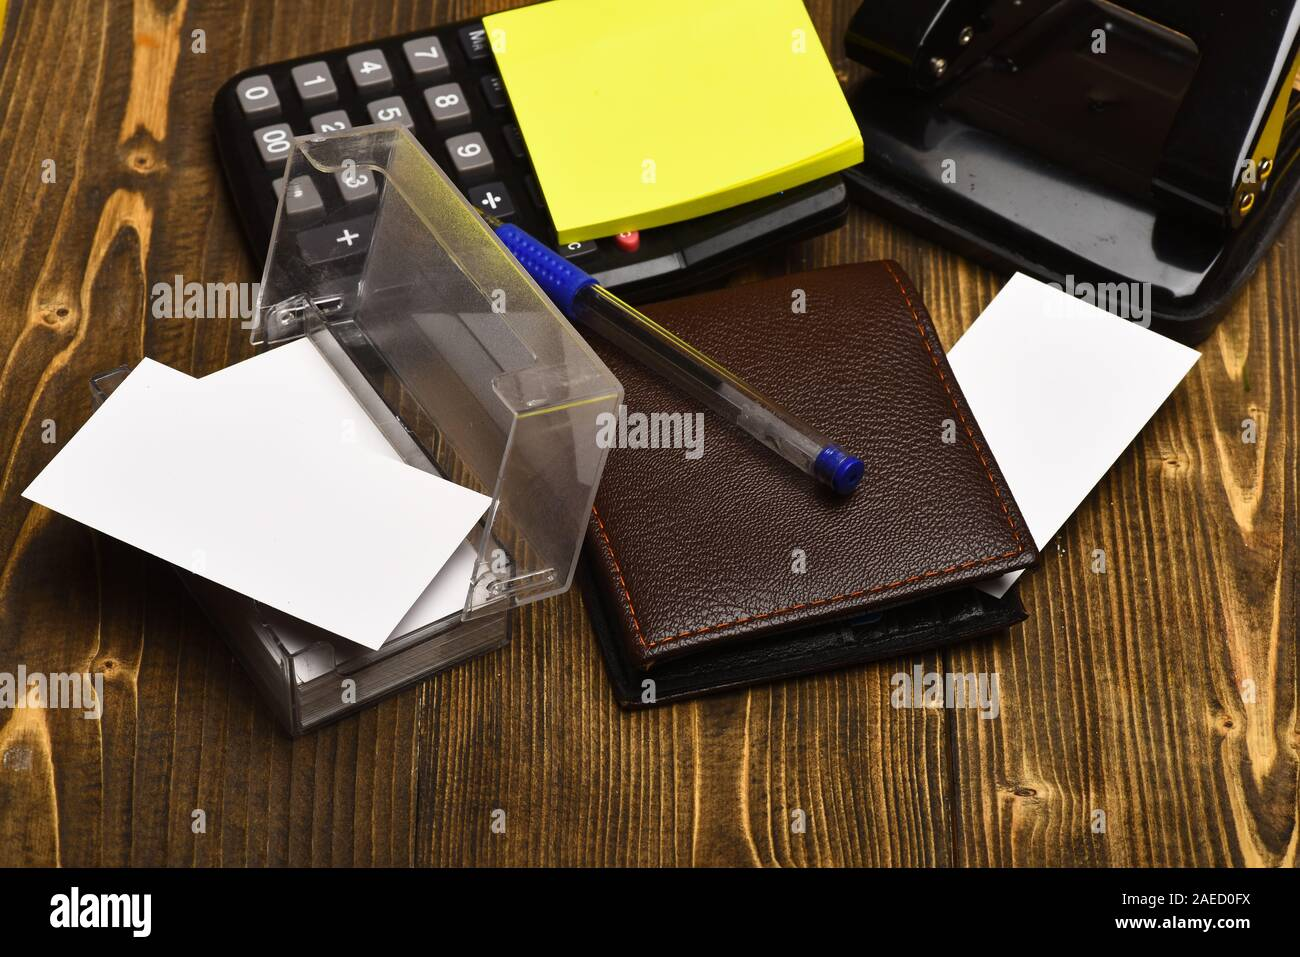 Business and work concept. Calculator, hole punch, business card holder, note paper and pen. Mans leather wallet and stationery. Office tools isolated on vintage background, close up. Stock Photo